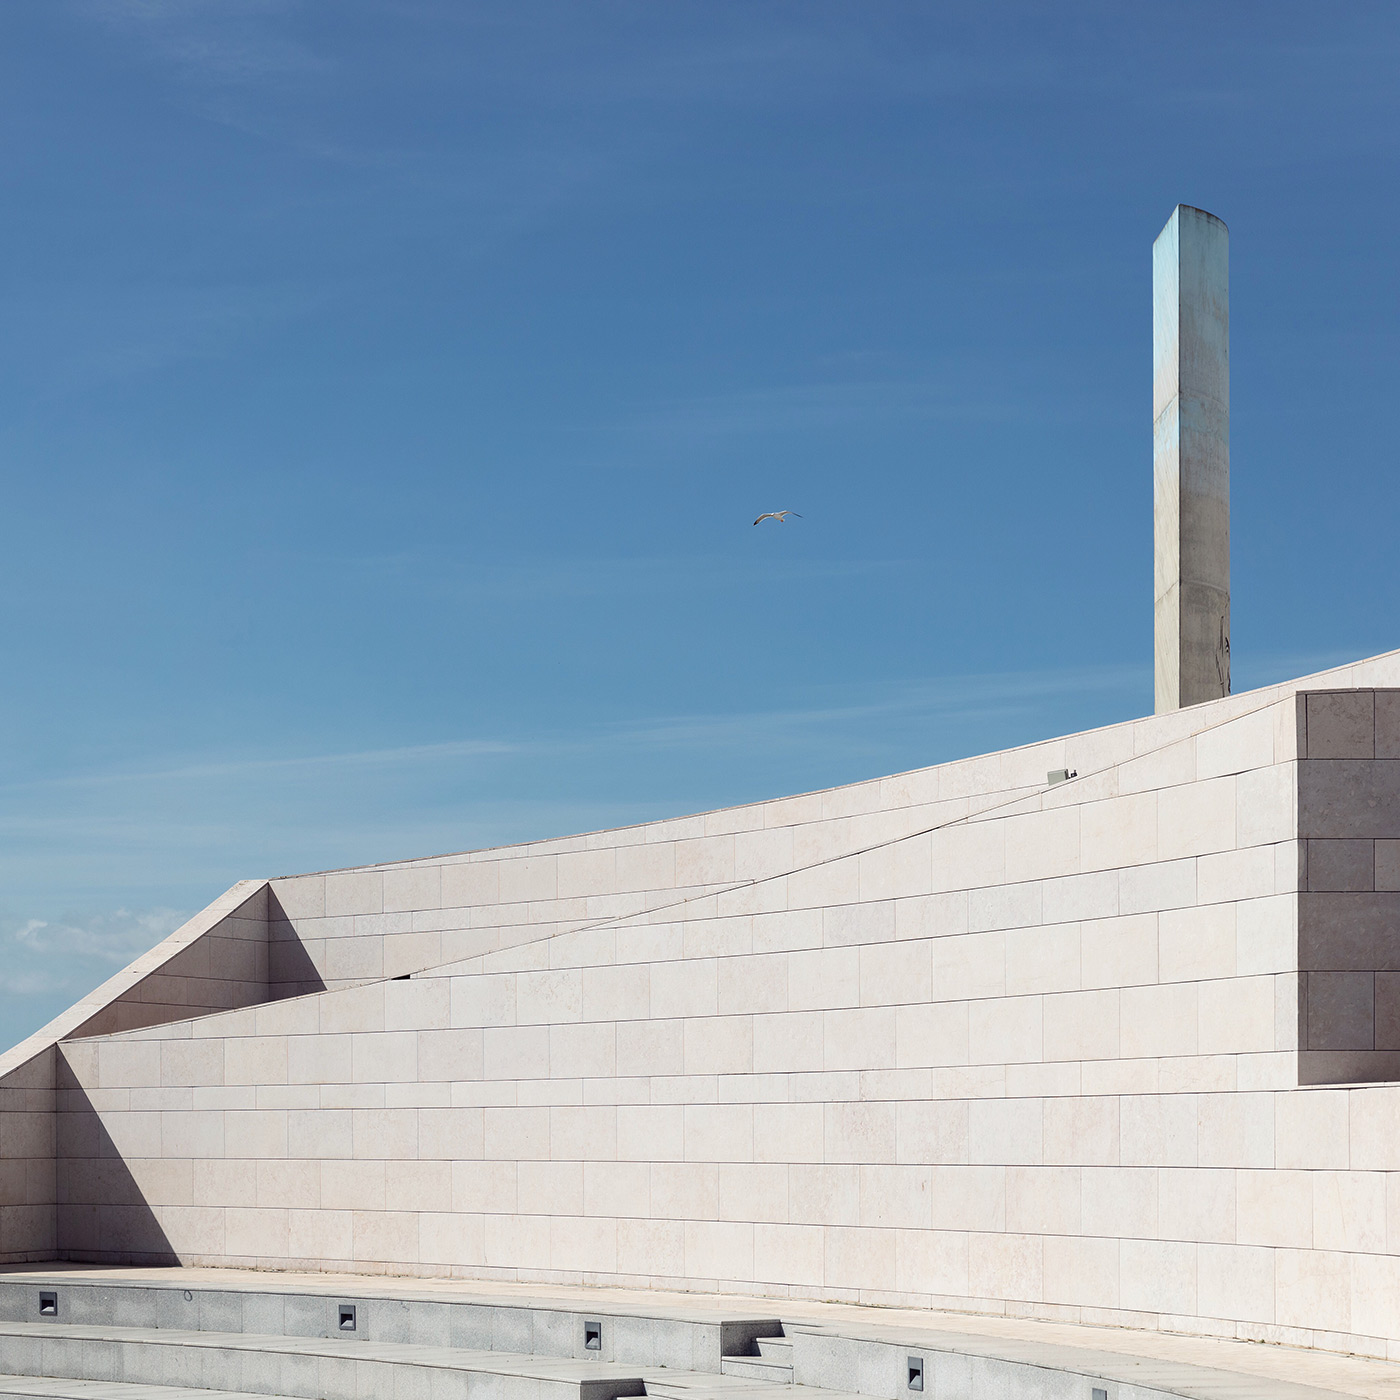 Champalimaud Center for the Unknown . Location: Lisbon, Portugal . Architect: Charles Correa Associates